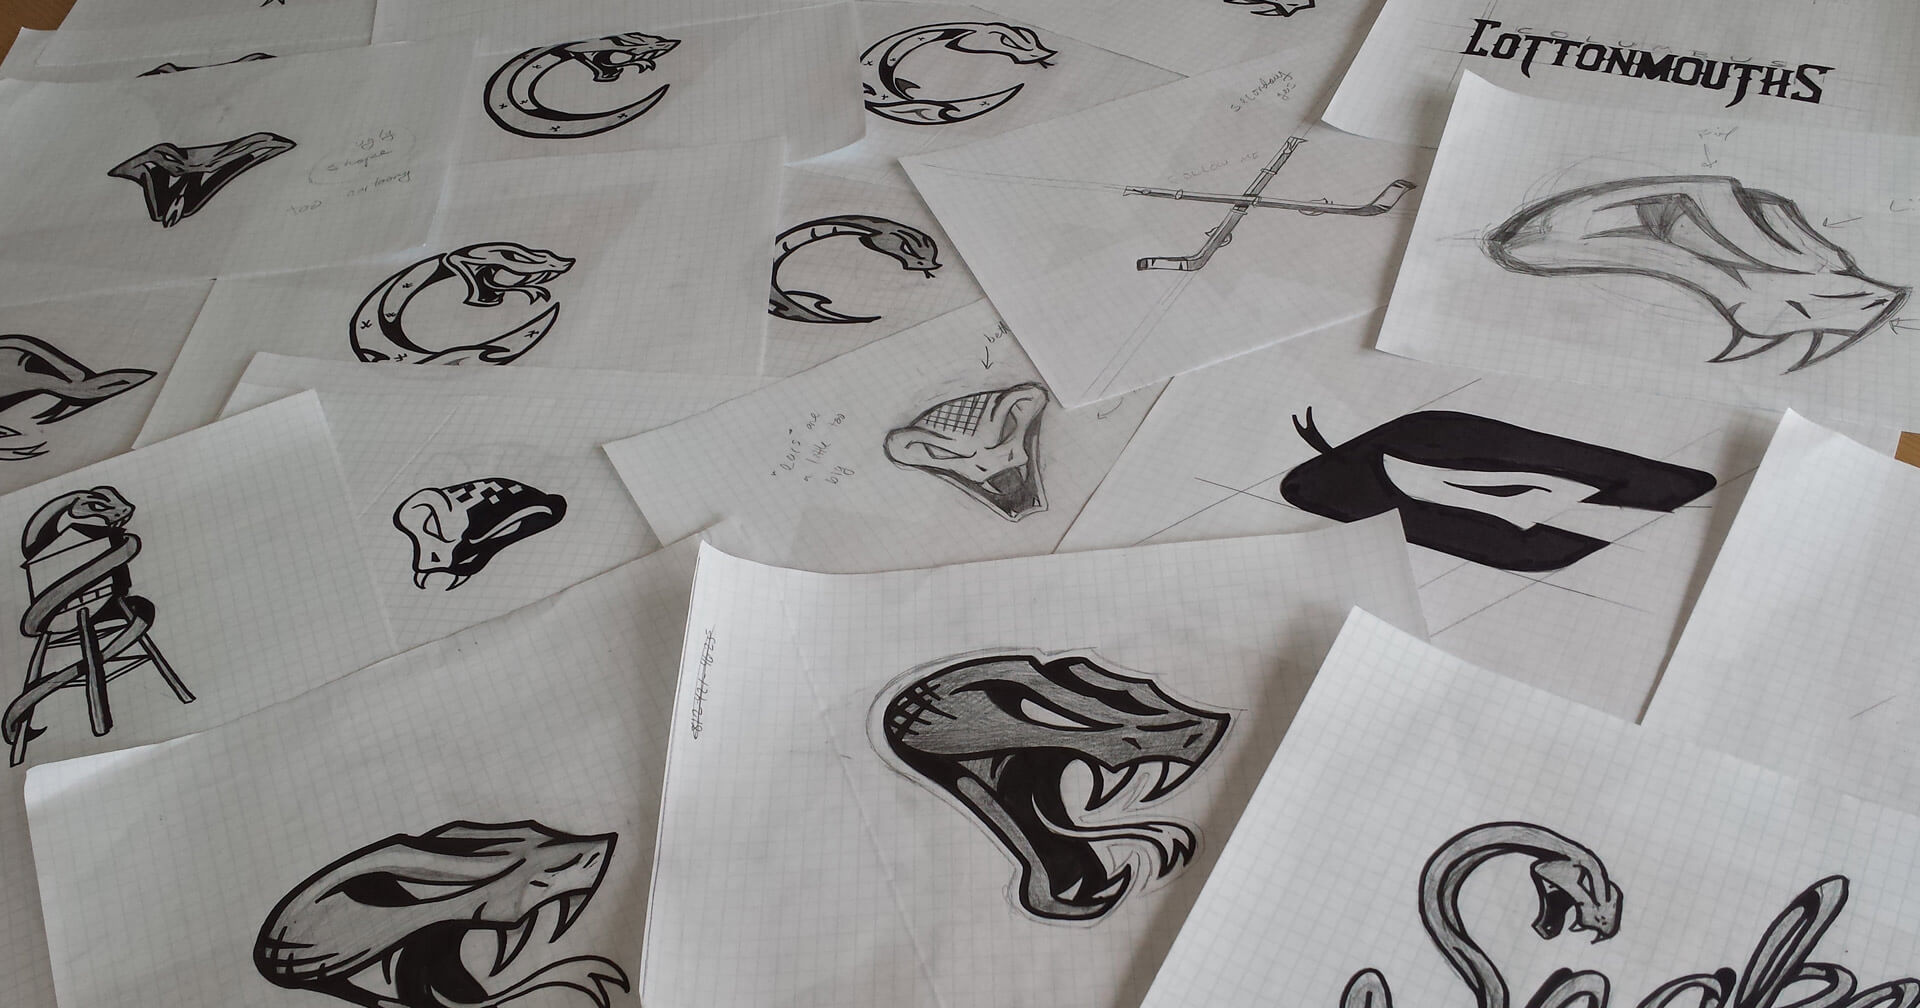 columbus cottonmouths branding system sketches